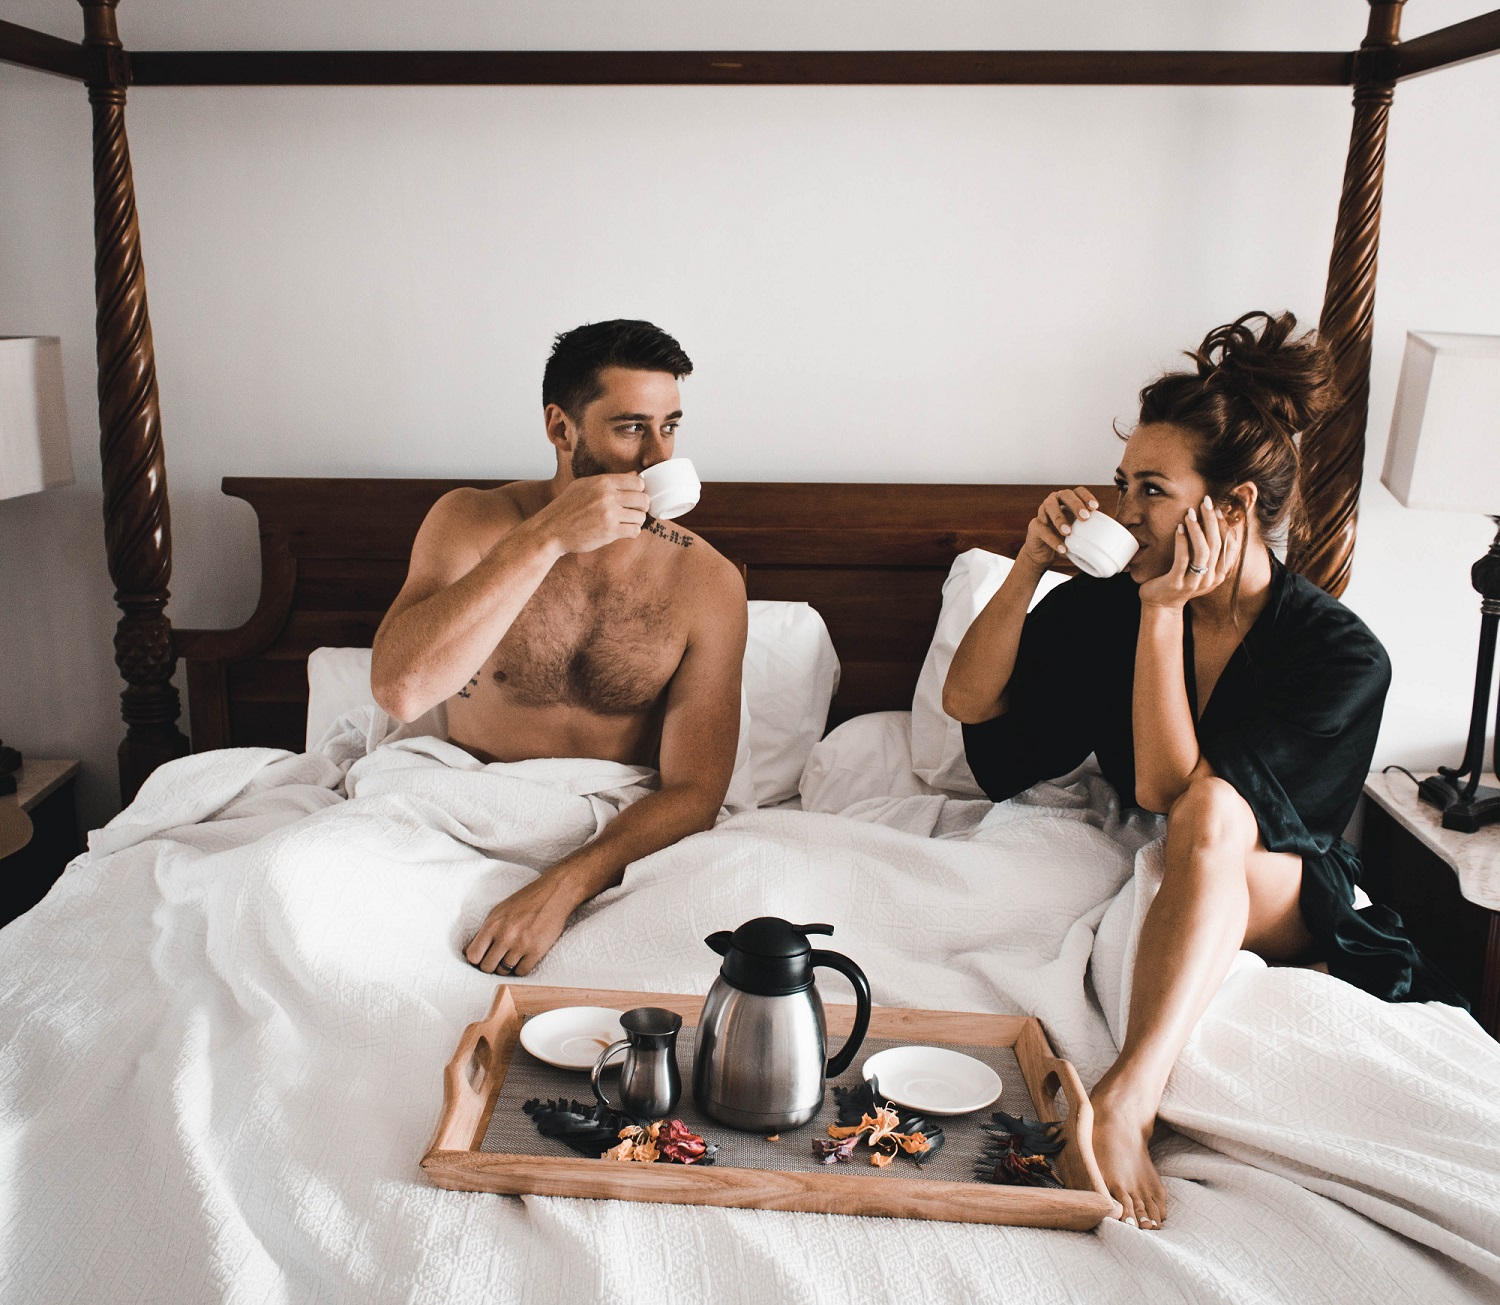 A man and woman in bed, eating oysters